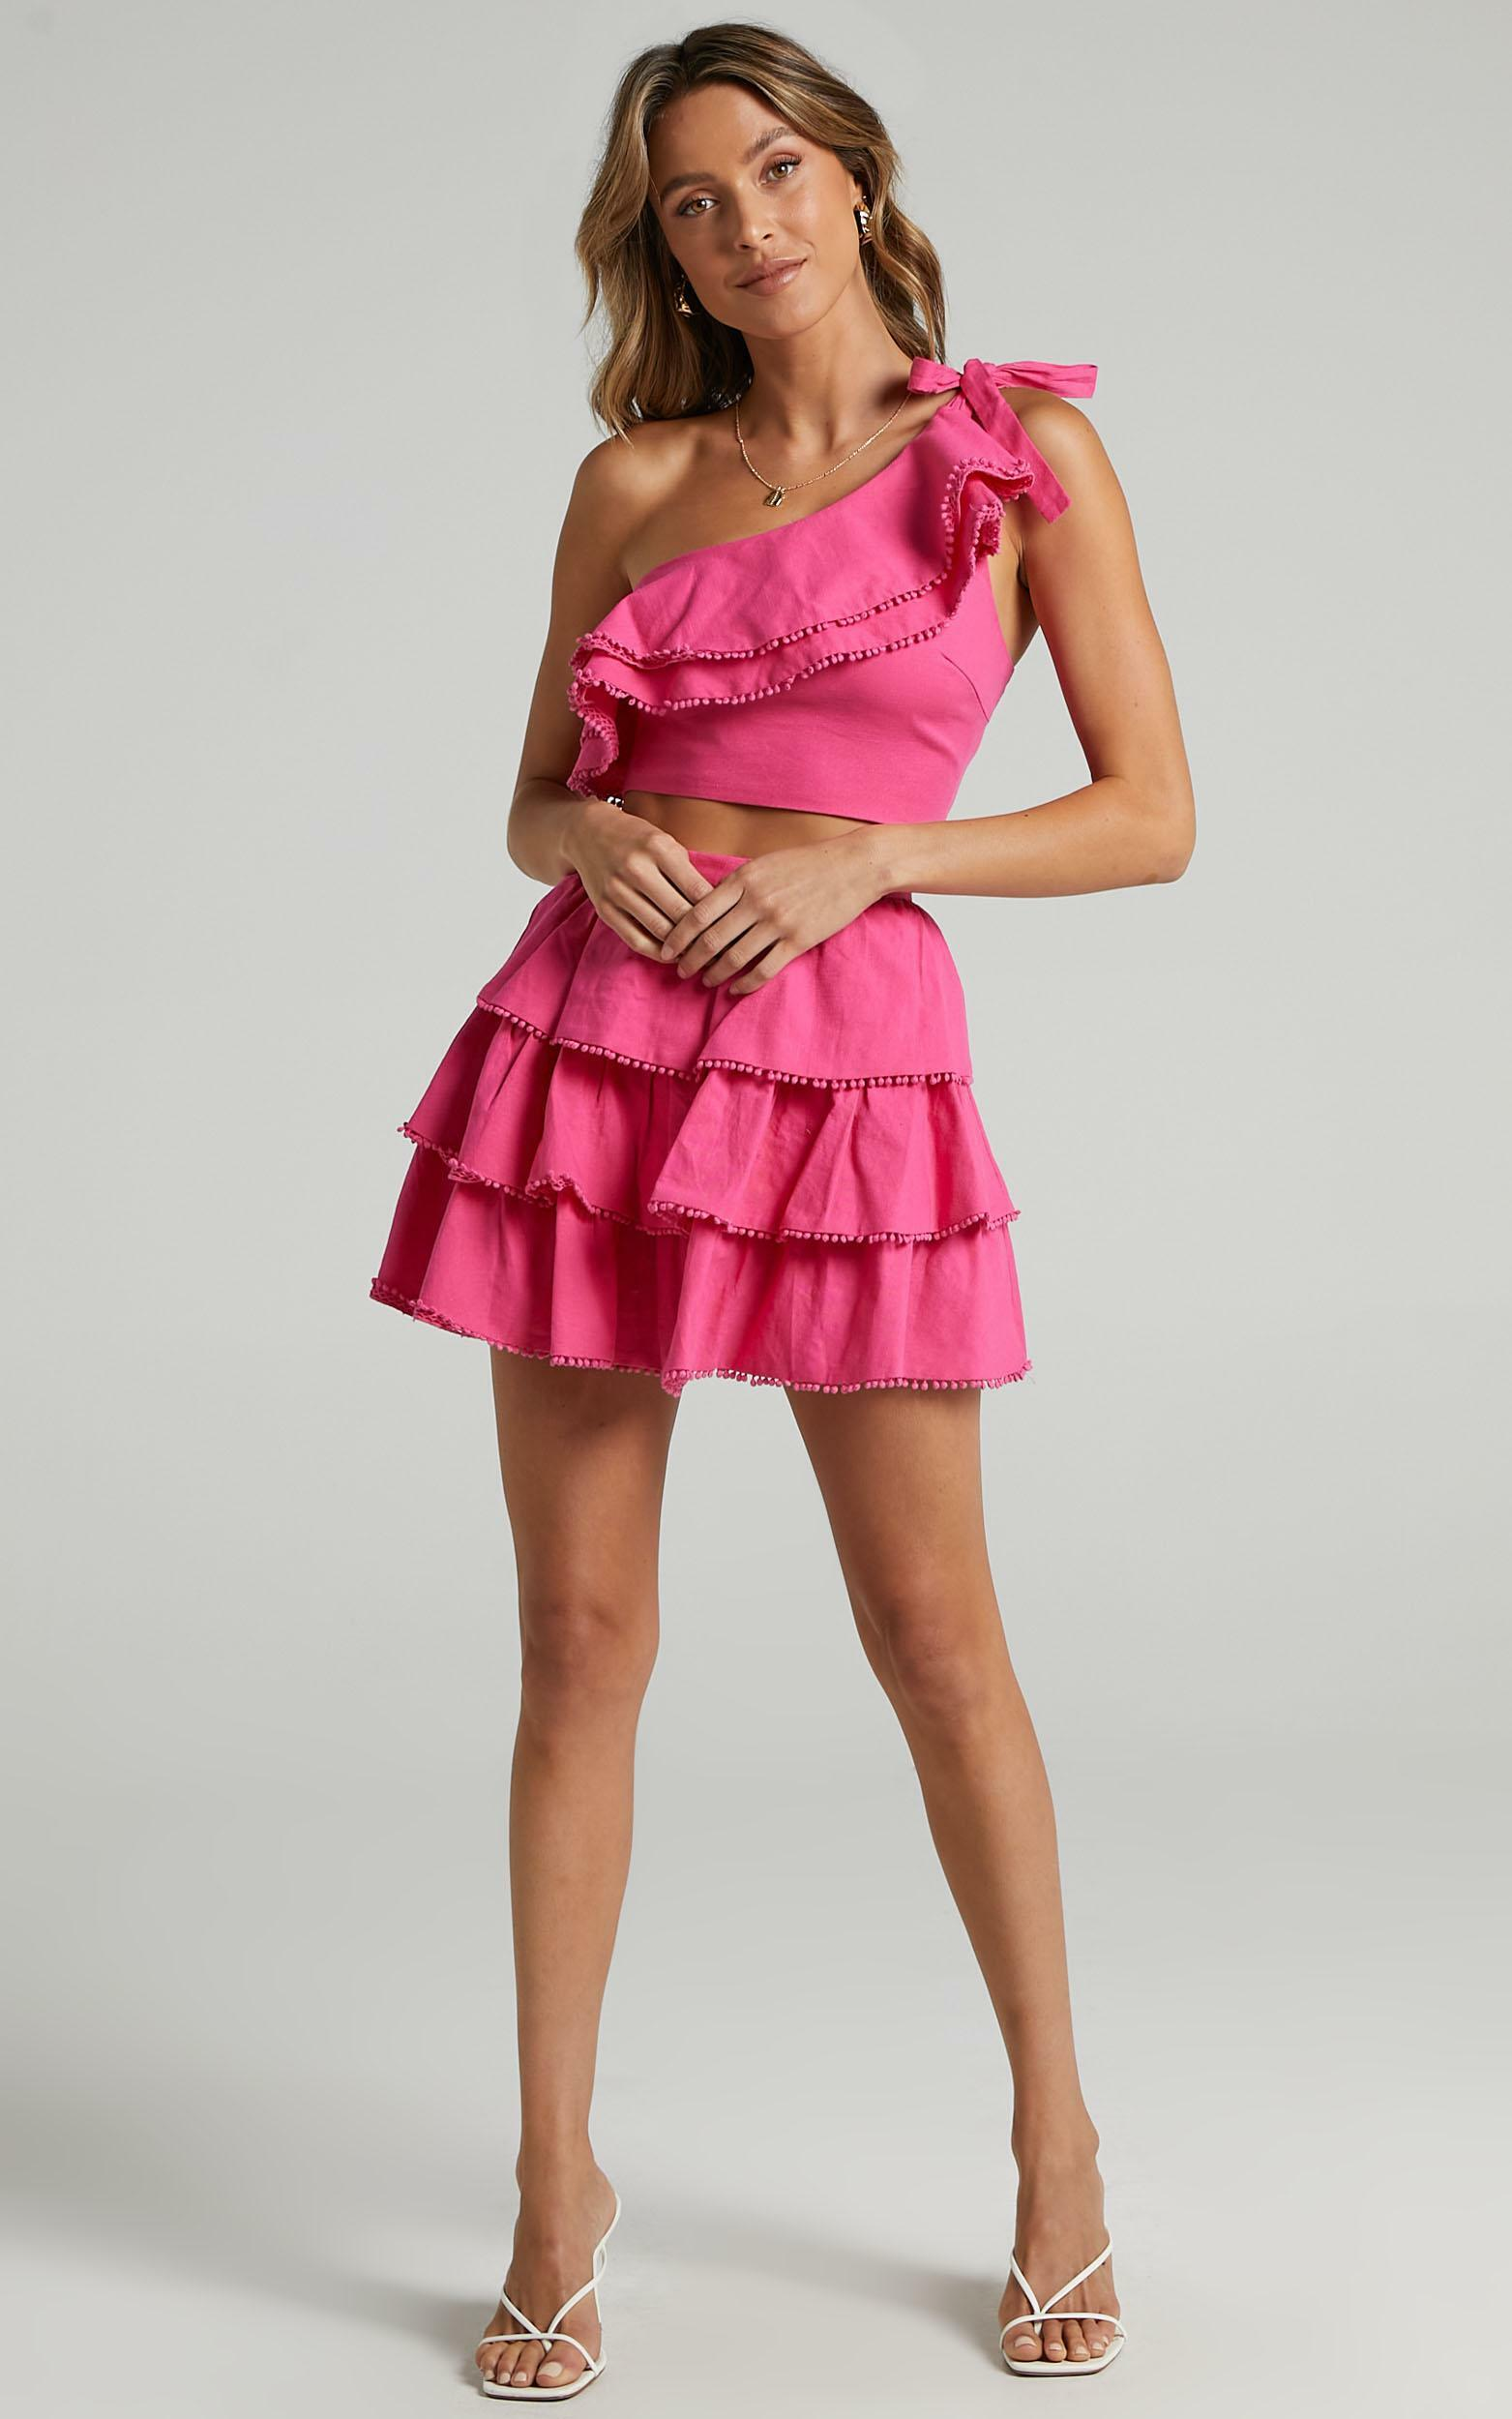 Rooftop Spritz Two Piece Set in hot pink - 20 (XXXXL), PNK11, hi-res image number null